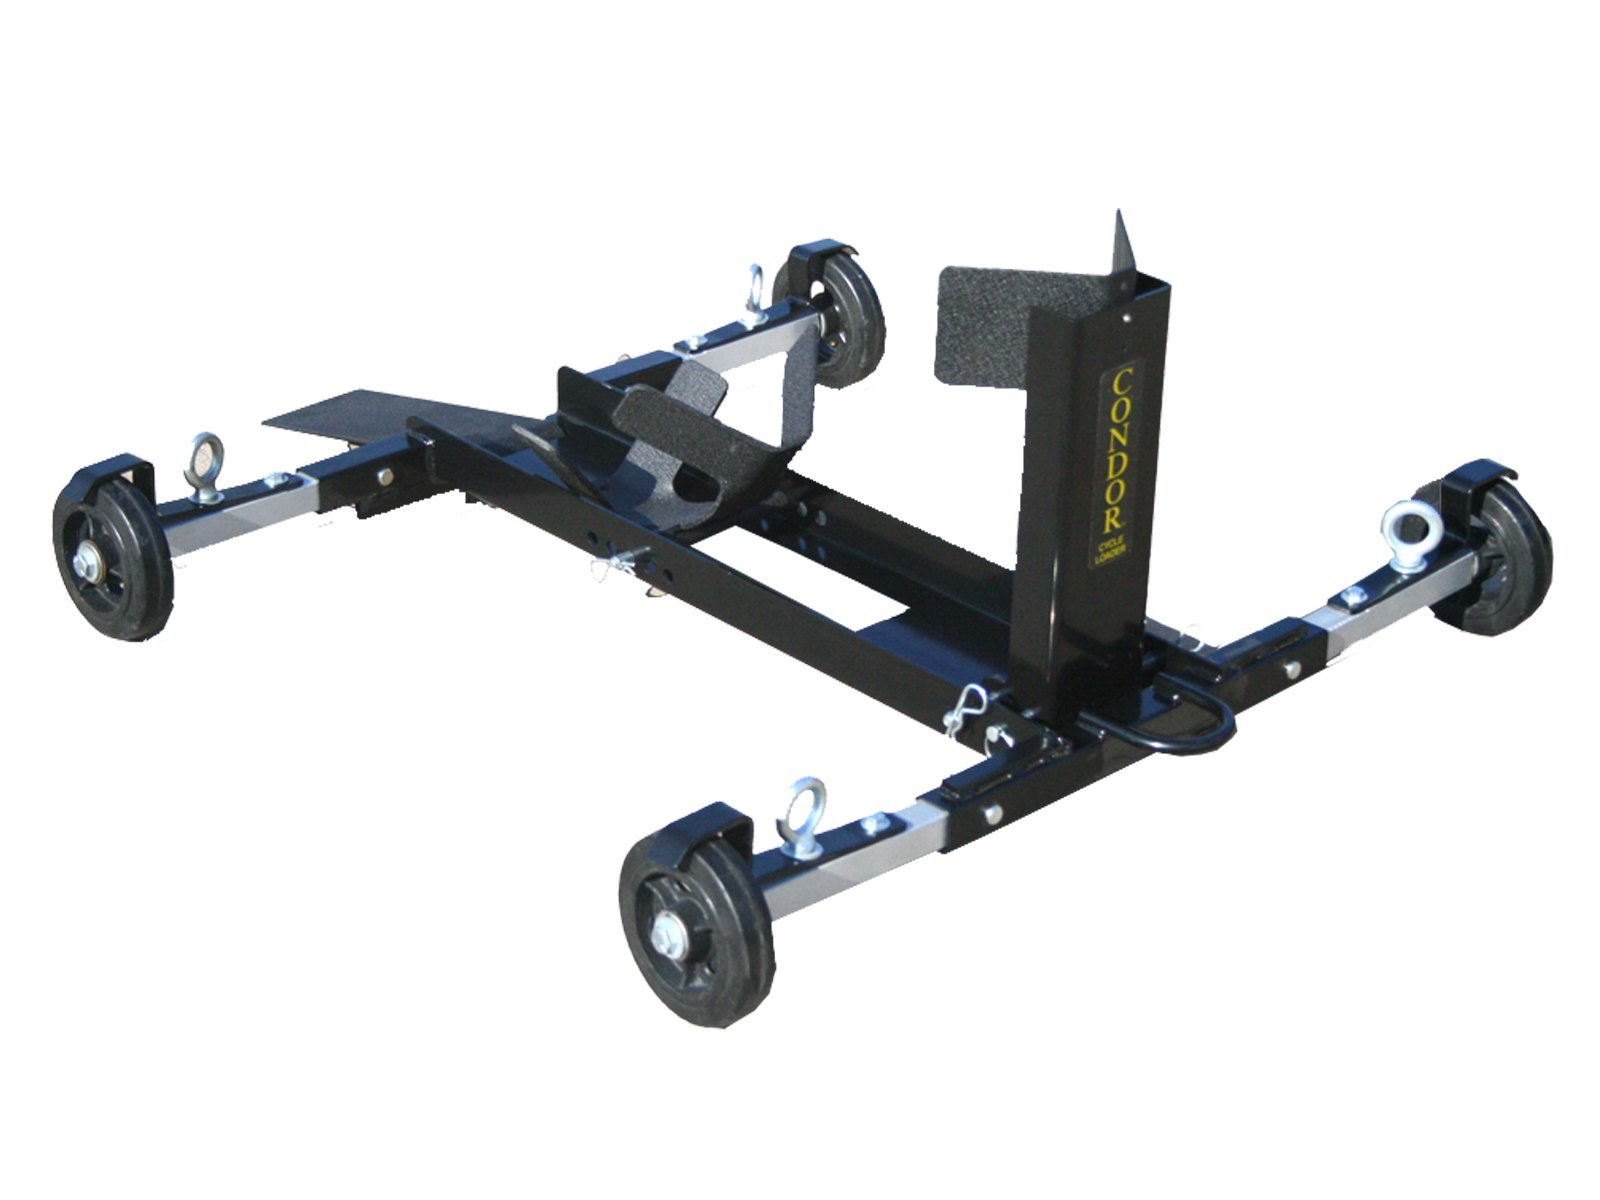 Condor Cycle Loader - Motorcycle Chock - For Rollback Tow Trucks CL-1000 by CONDOR (Image #2)